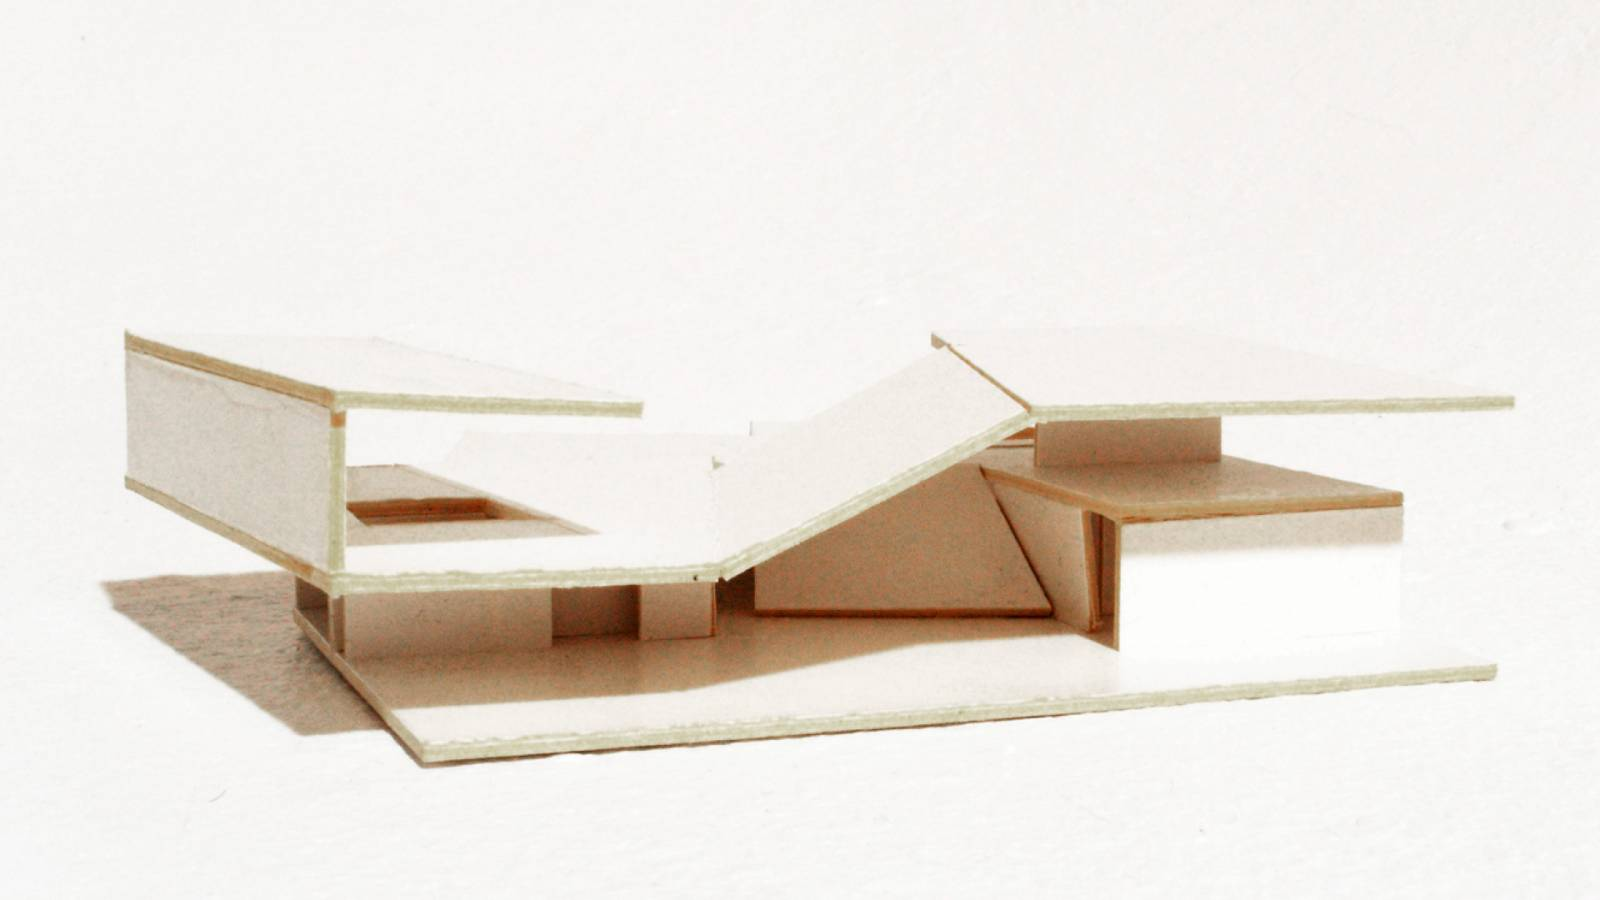 CONCEPT MODEL - V-House - SPOL Architects